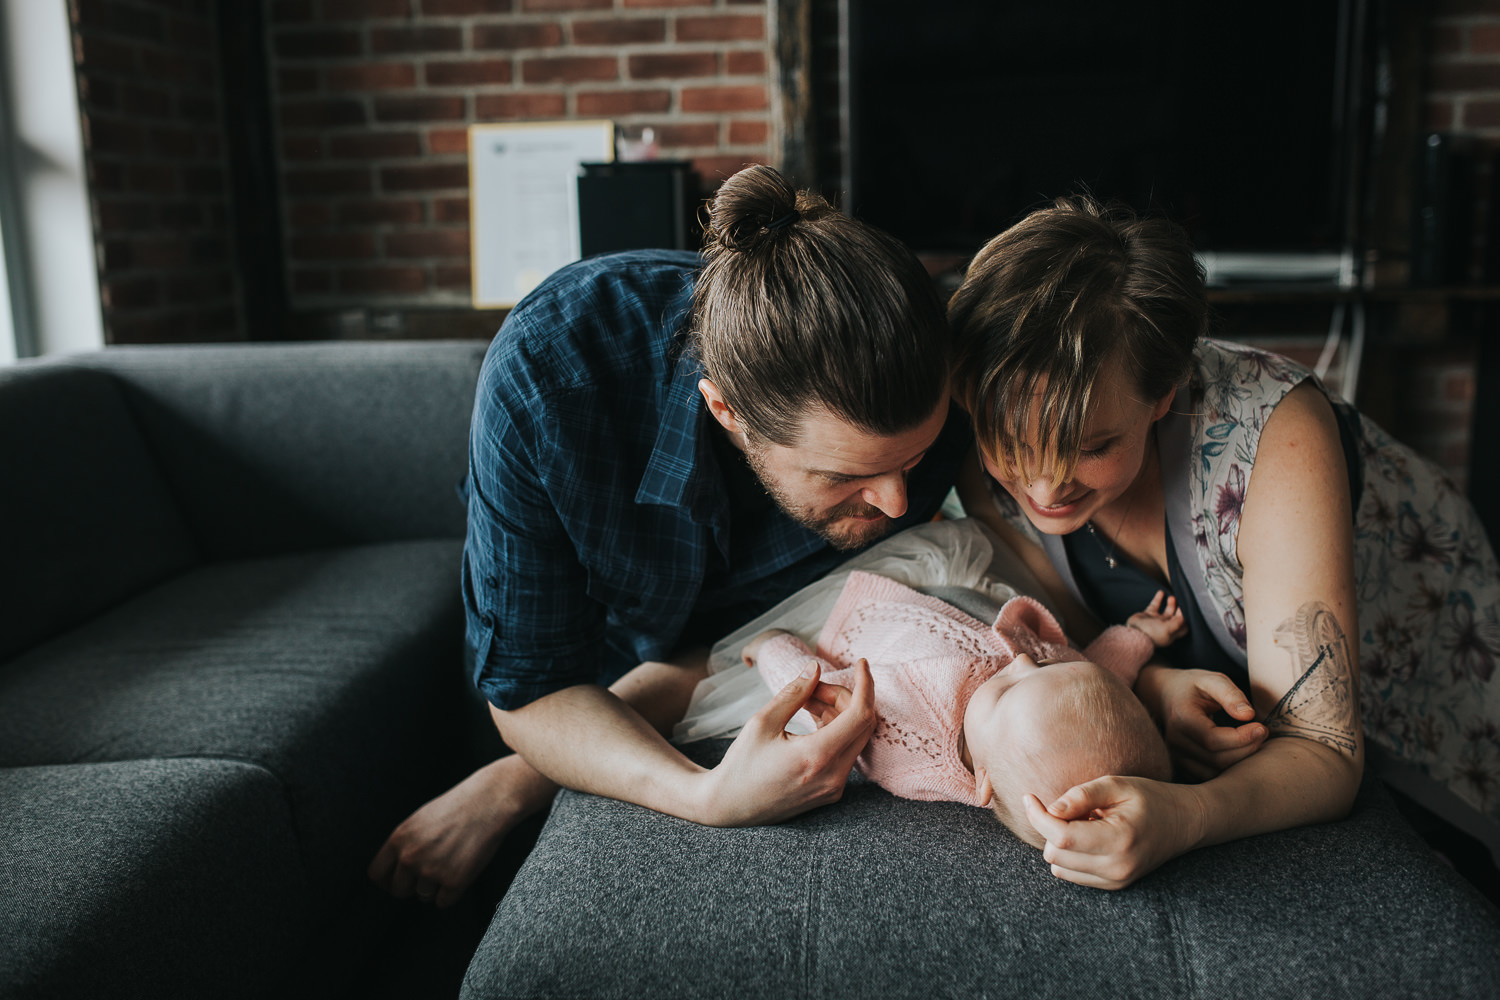 parents looking and smiling at 5 month old baby girl lying on couch - Stouffville lifestyle photography